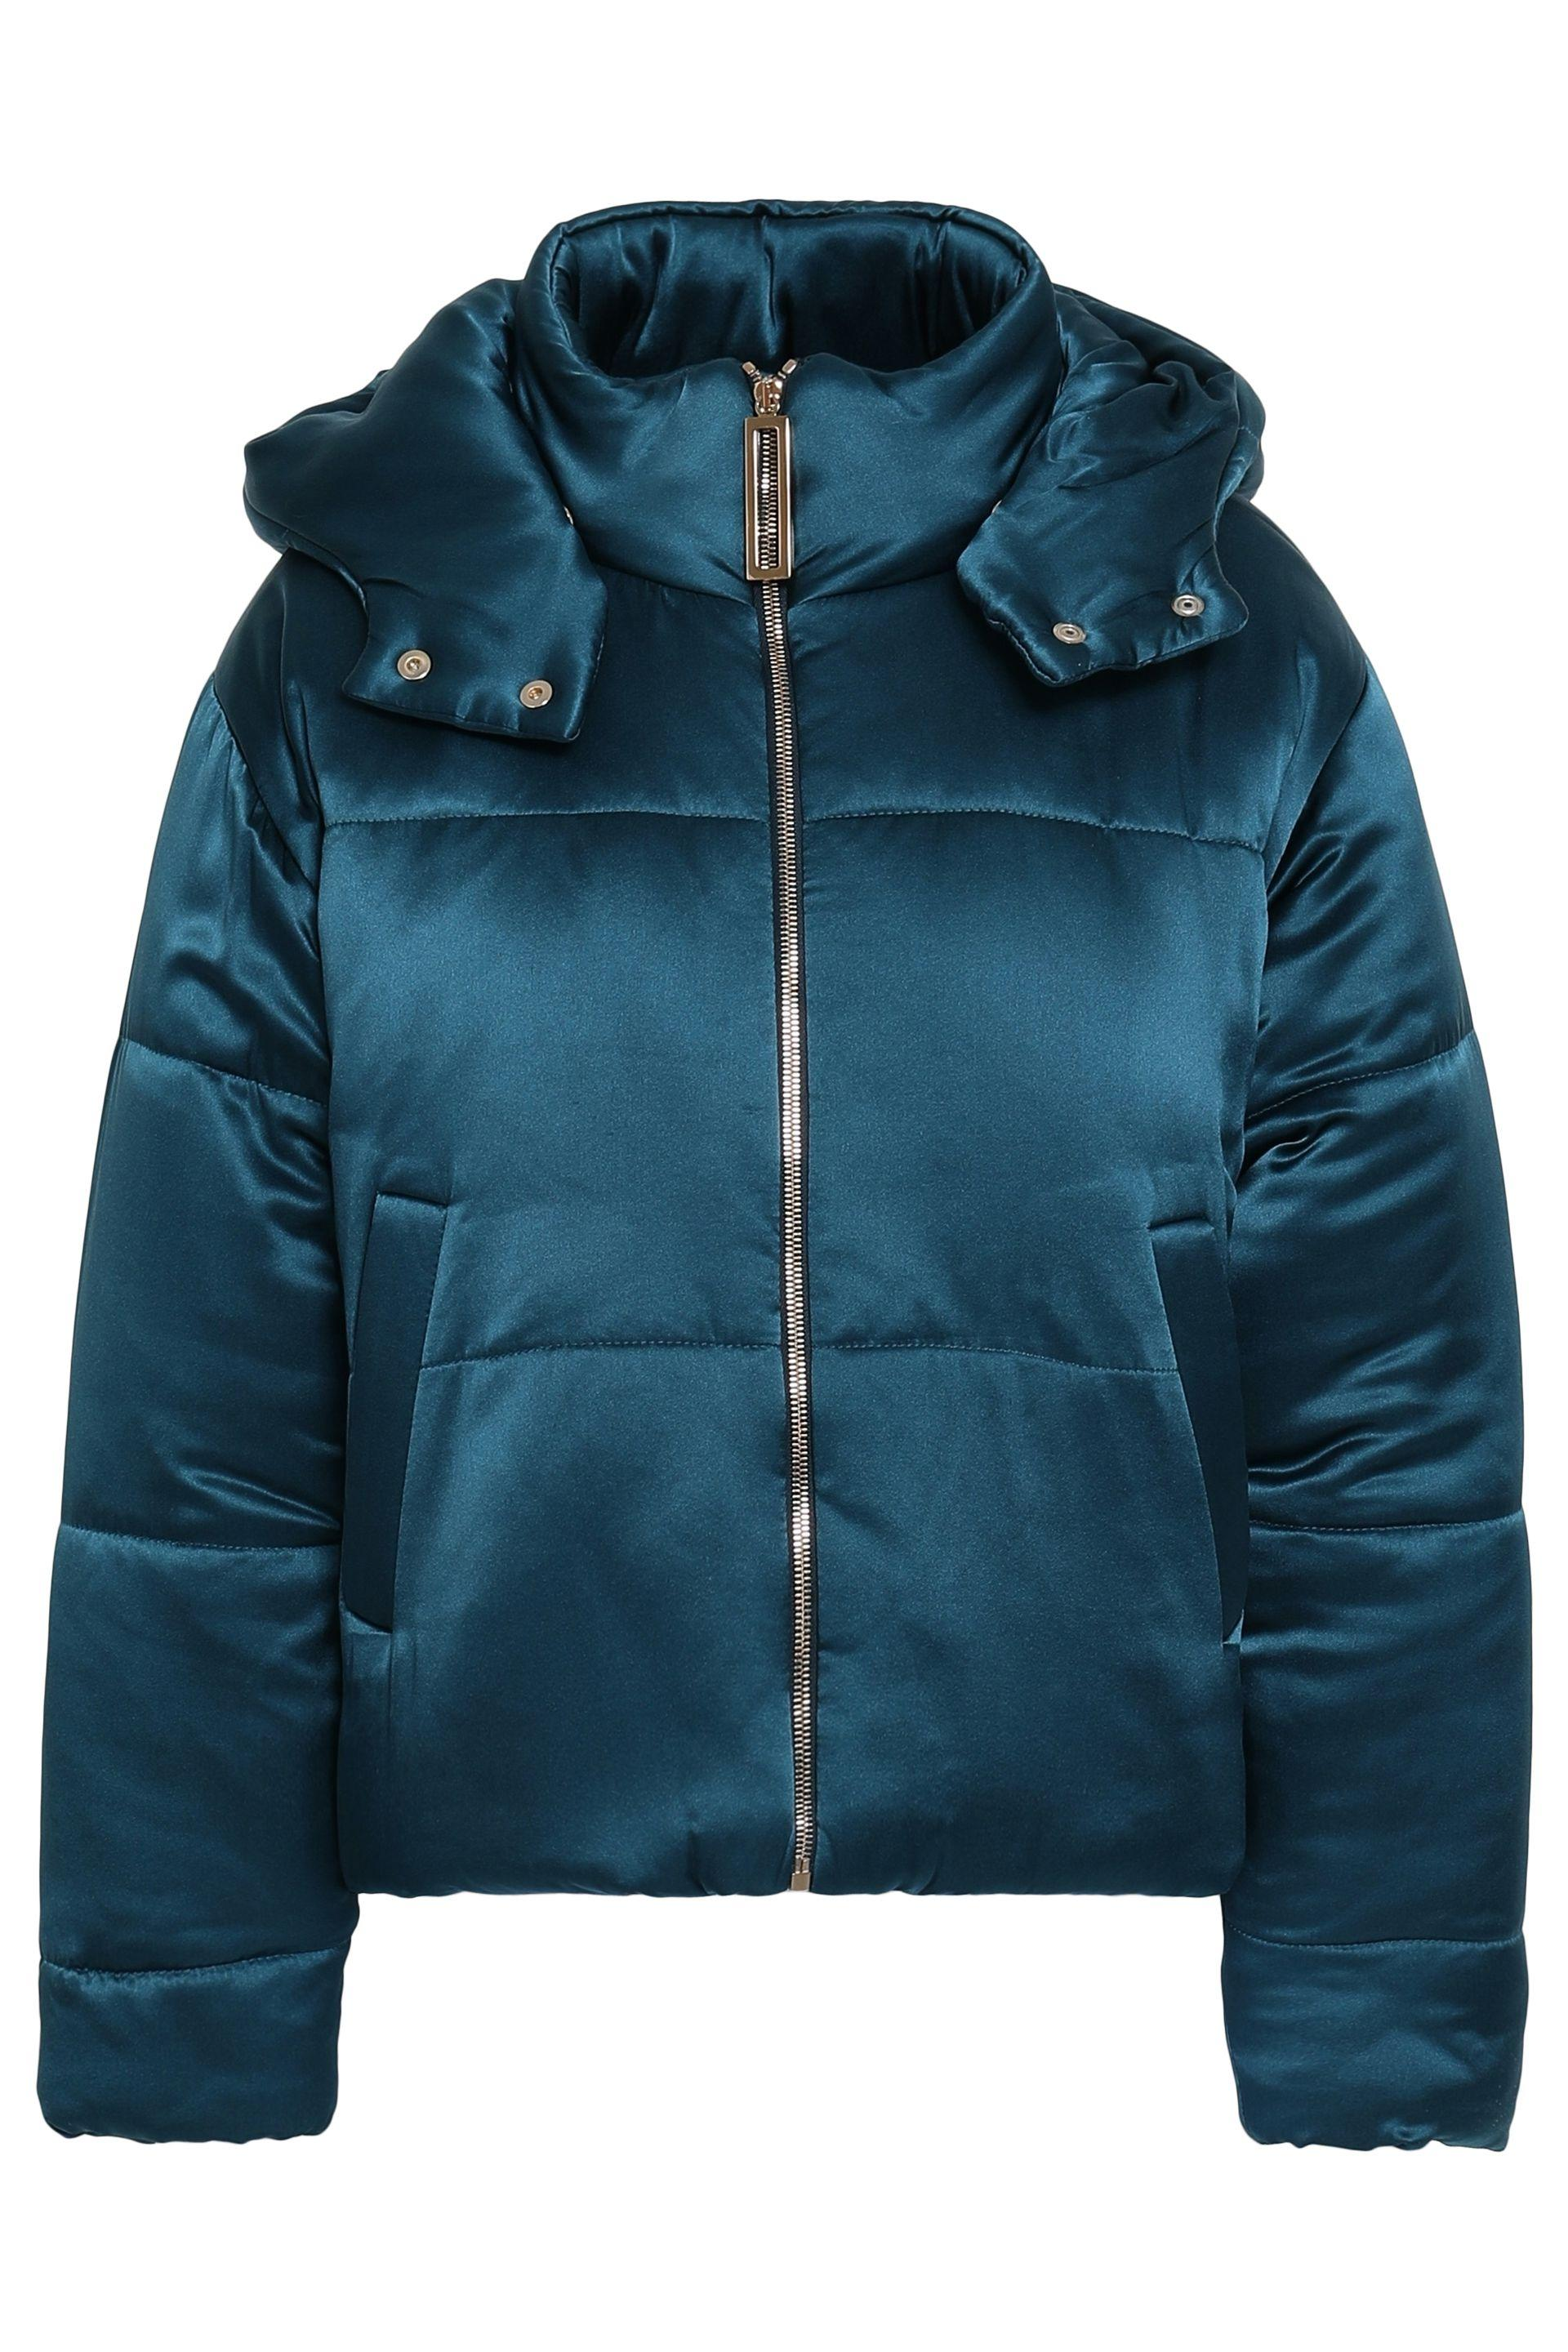 ceafc5a01fc70 Olivia Von Halle Woman Quilted Silk-satin Hooded Down Jacket Petrol ...